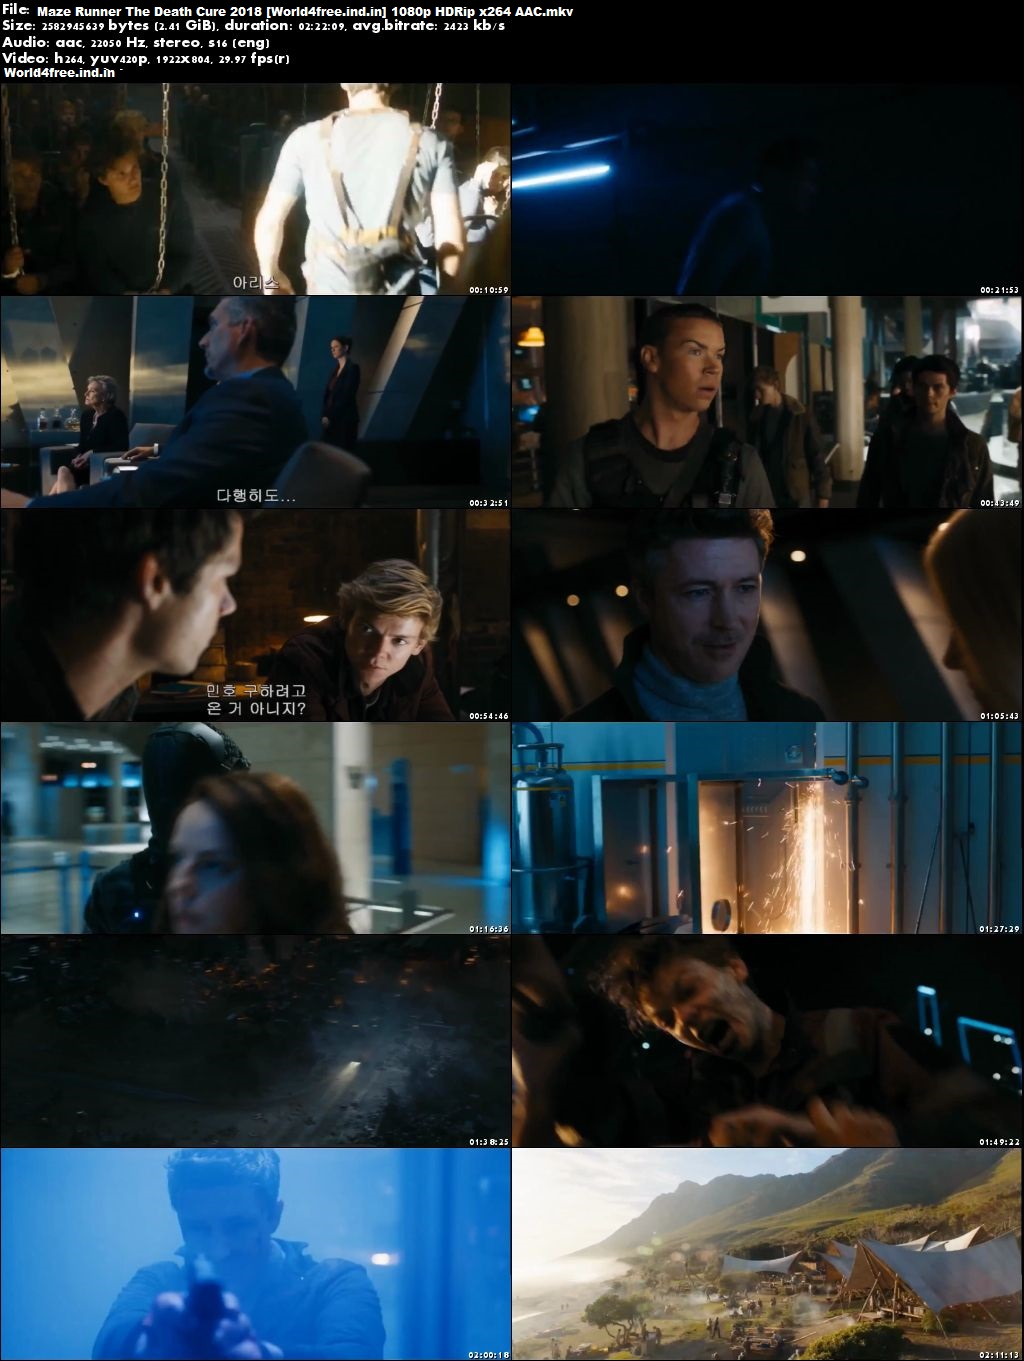 online worldfree4u Maze Runner: The Death Cure 2018 English Movie Download HDRip 720p